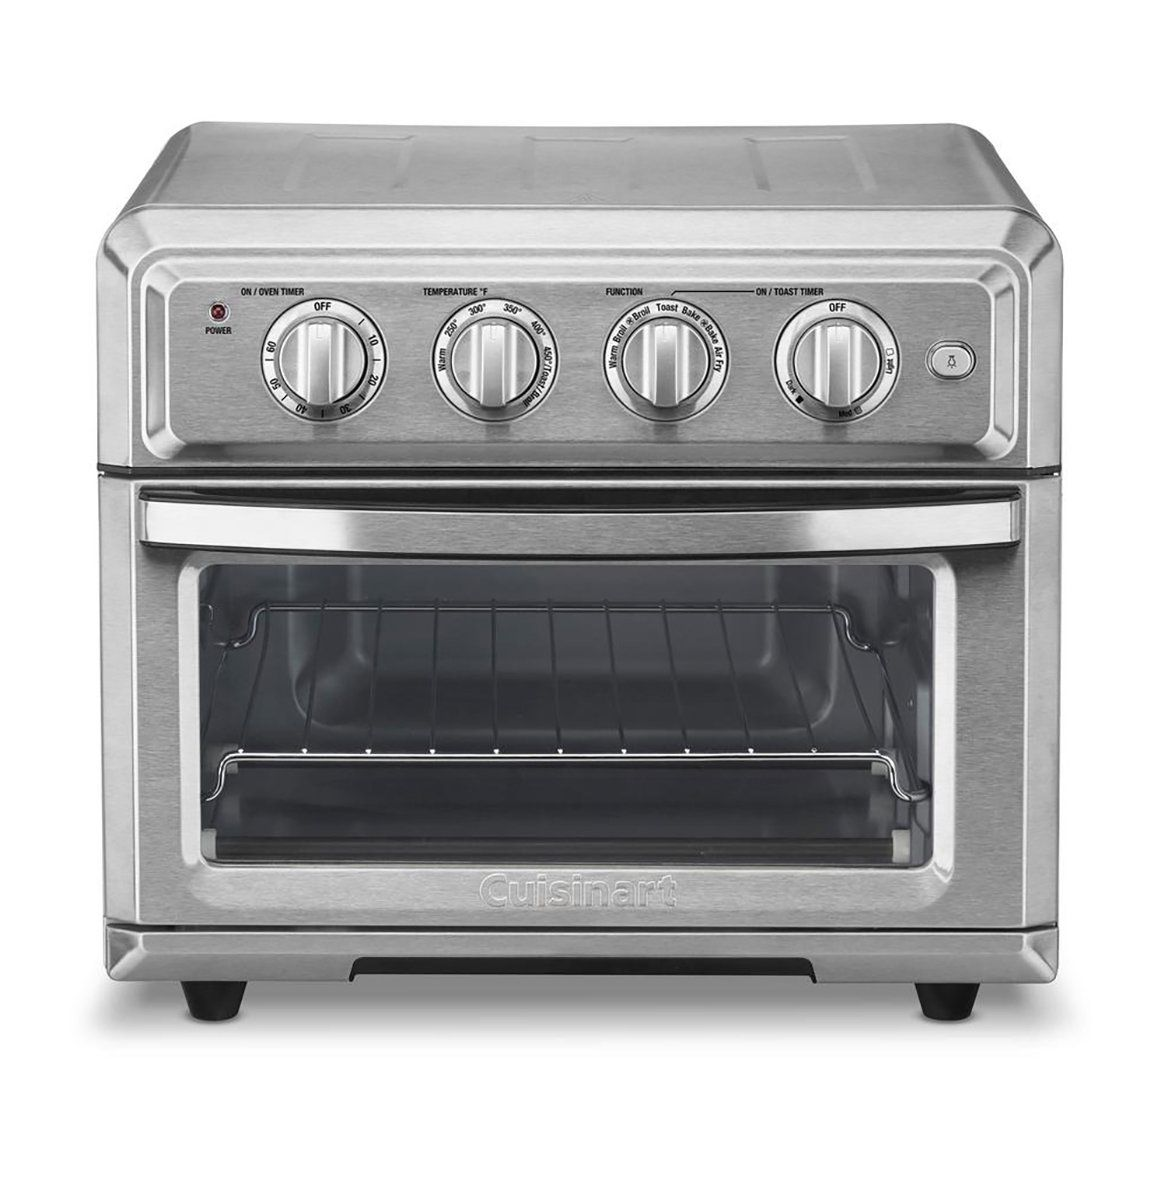 The 10 Best Toaster Ovens For All Your Cooking Needs According To Thousands Of Reviews Countertop Oven Oven